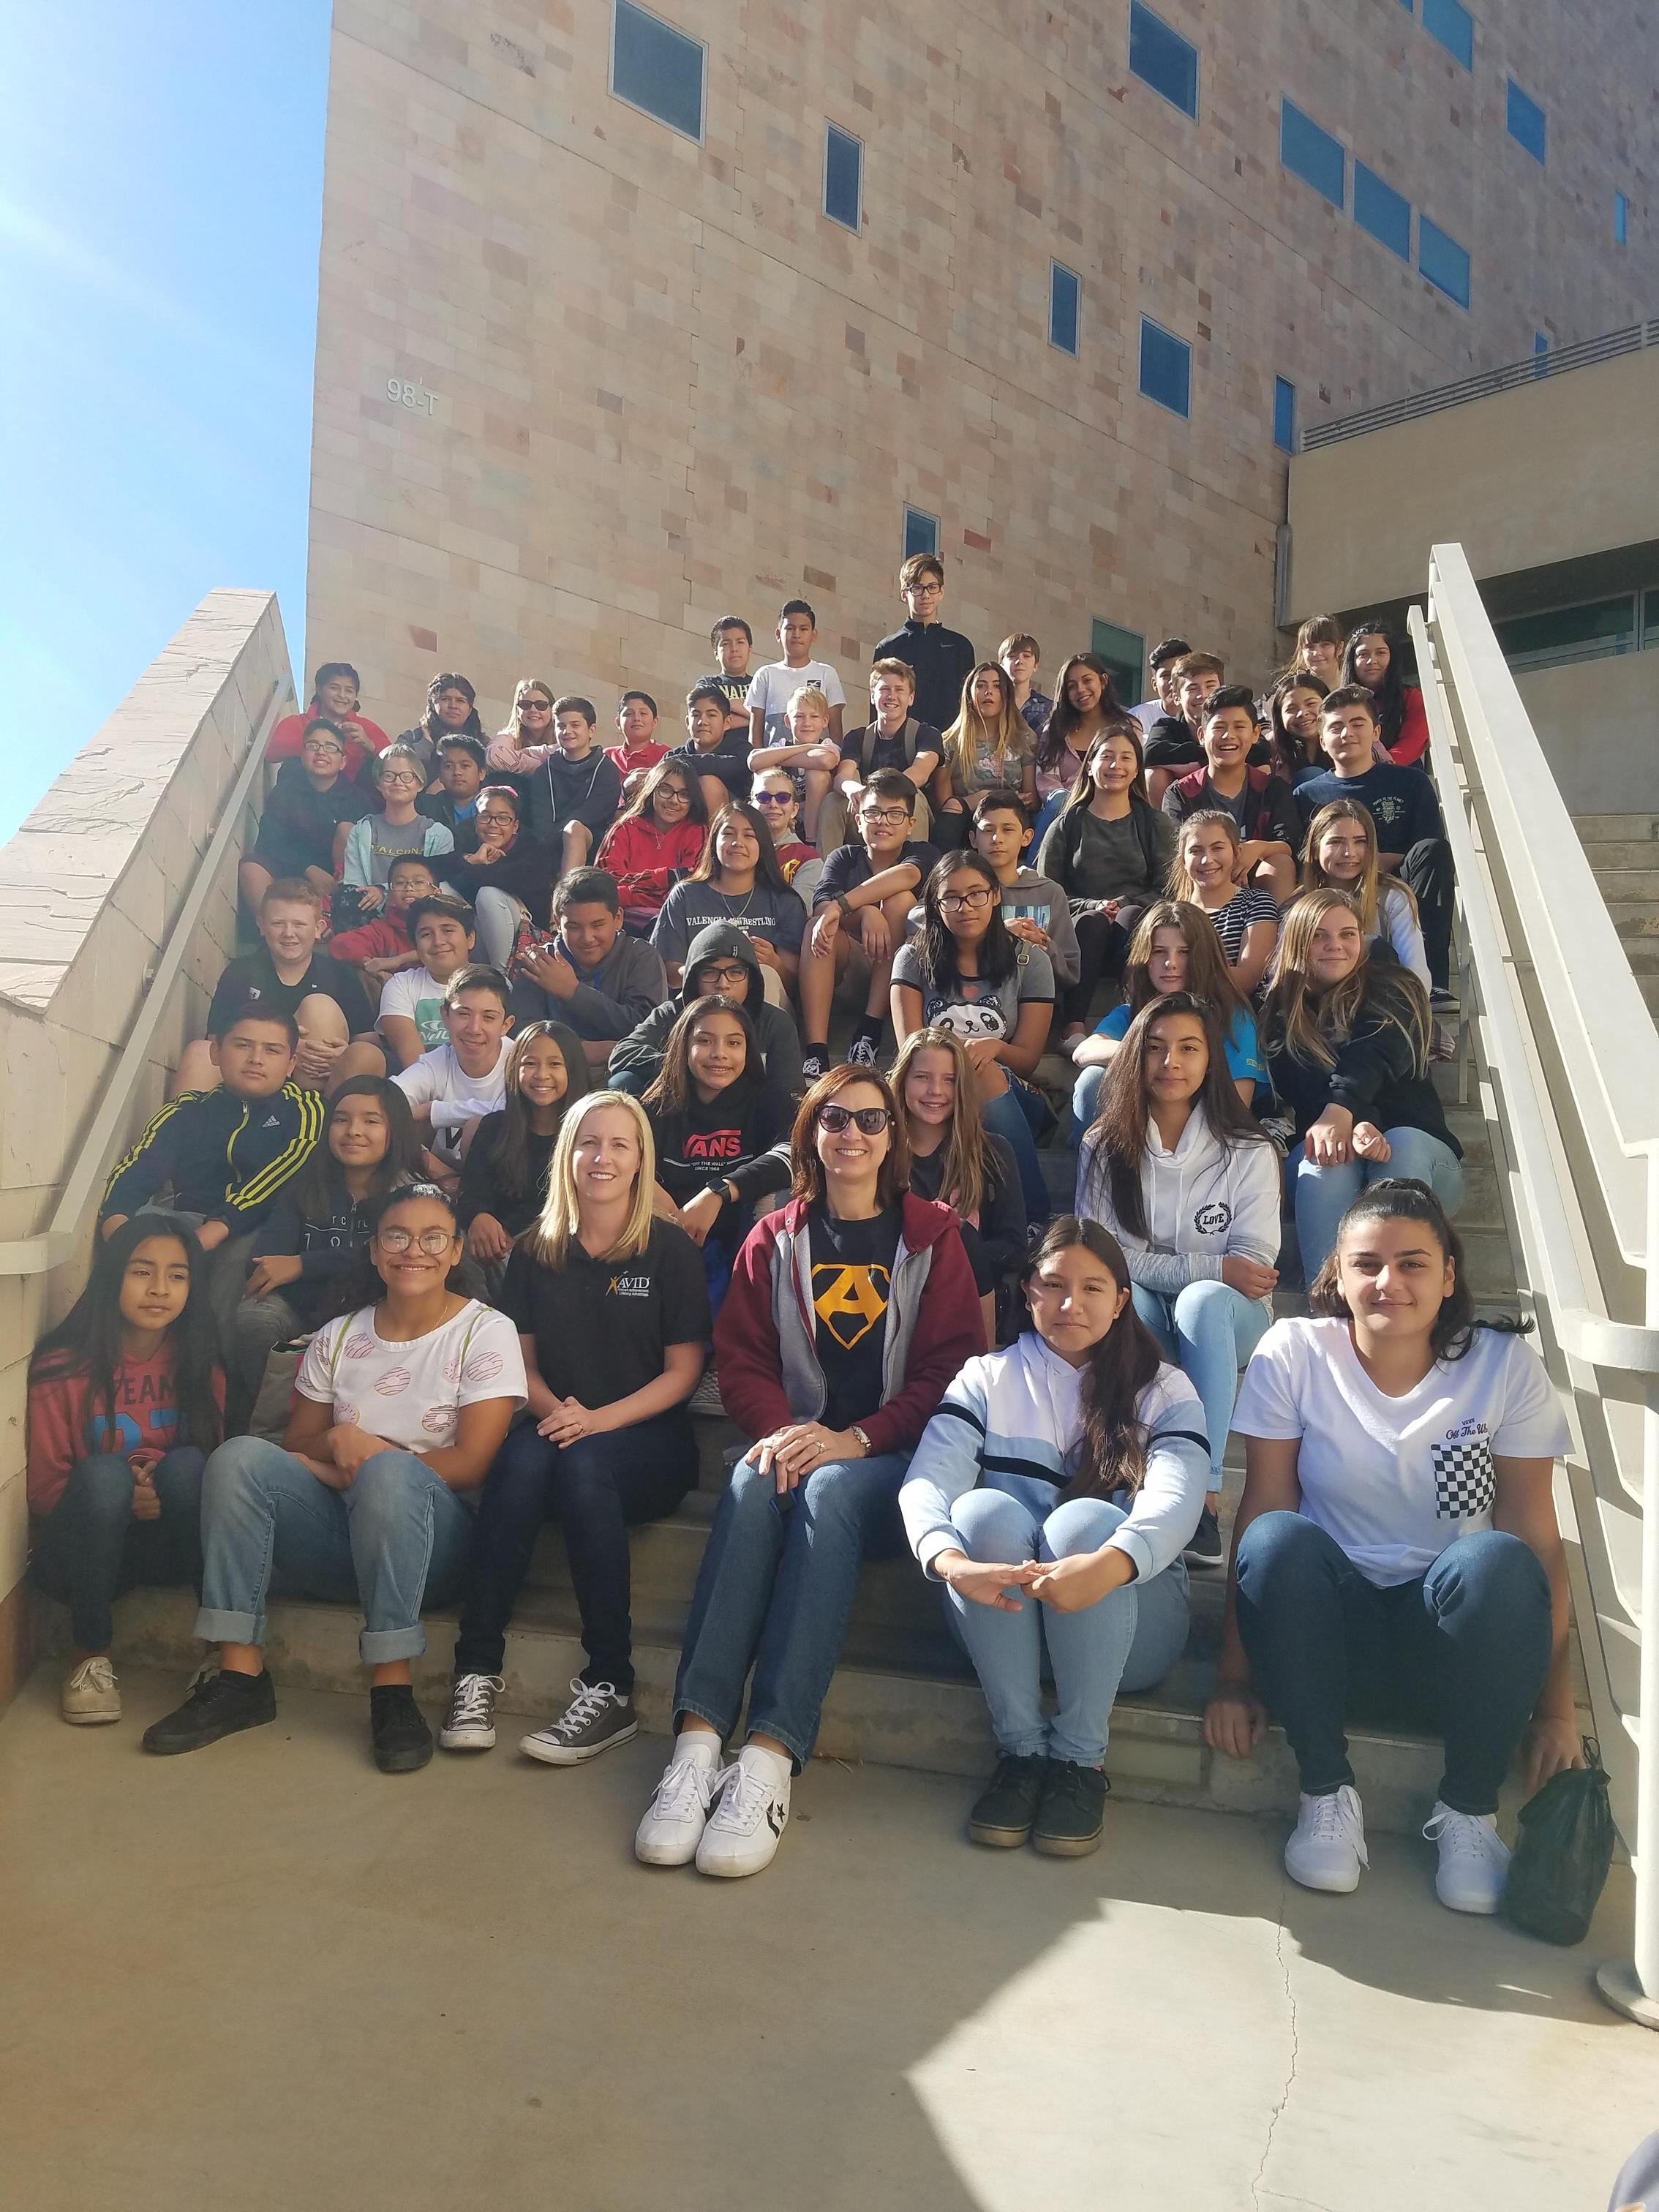 A large group photo of AVID students and their advisors, Mrs. Schultz and Mrs. Lapworth sitting on steps.